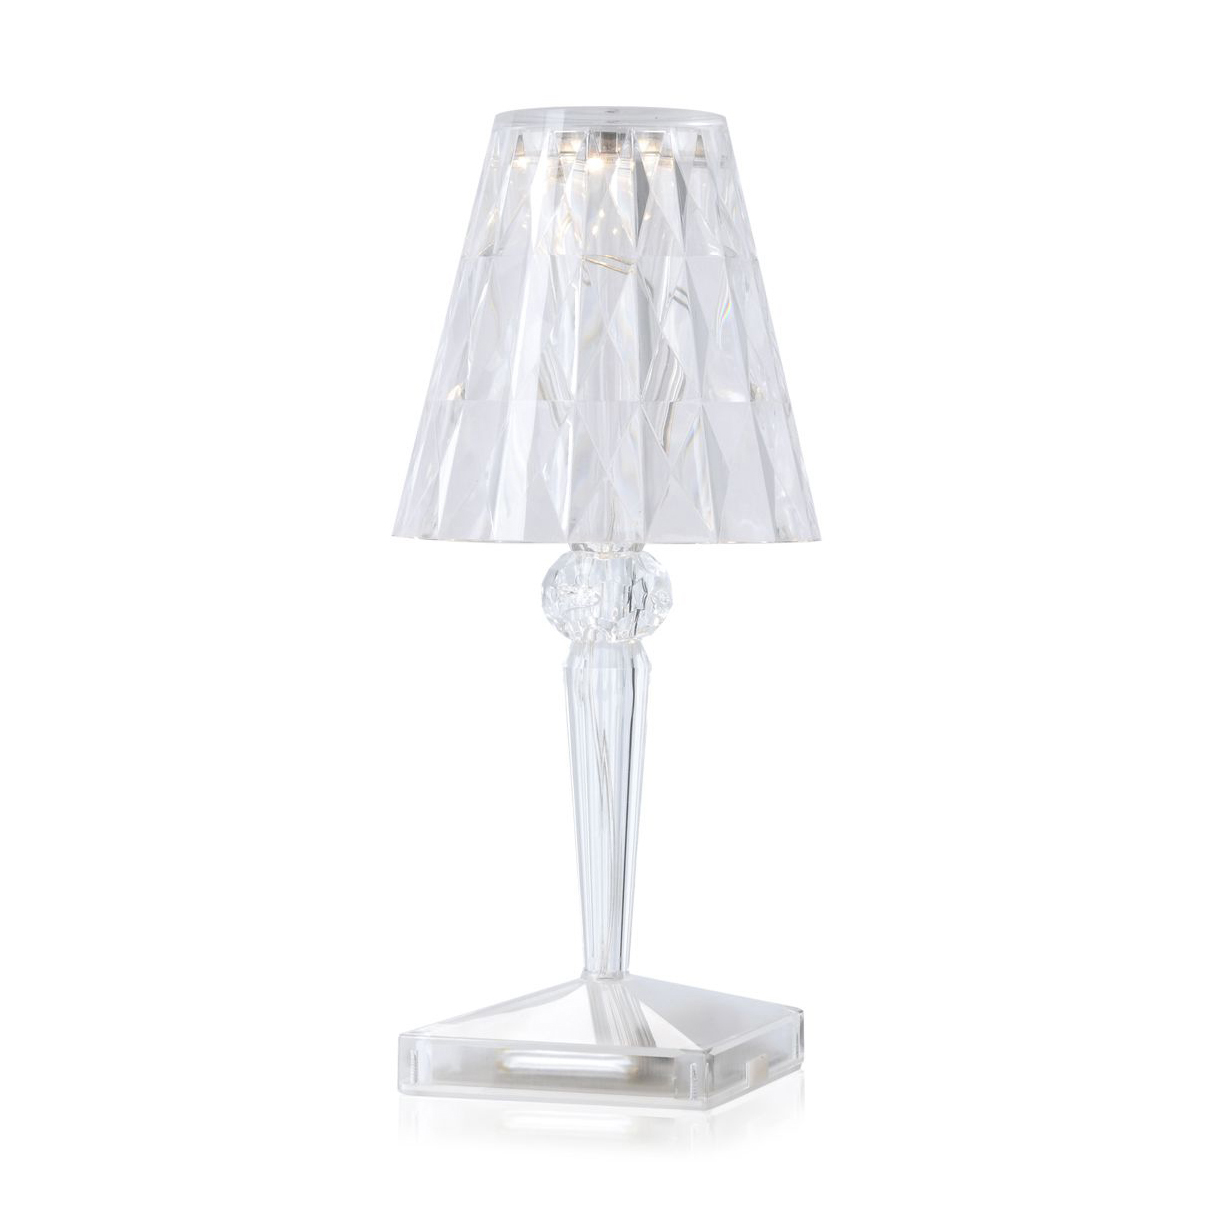 Lamp Kartell Kartell Battery Table Lamp 100 Rechargeable Transparent Light